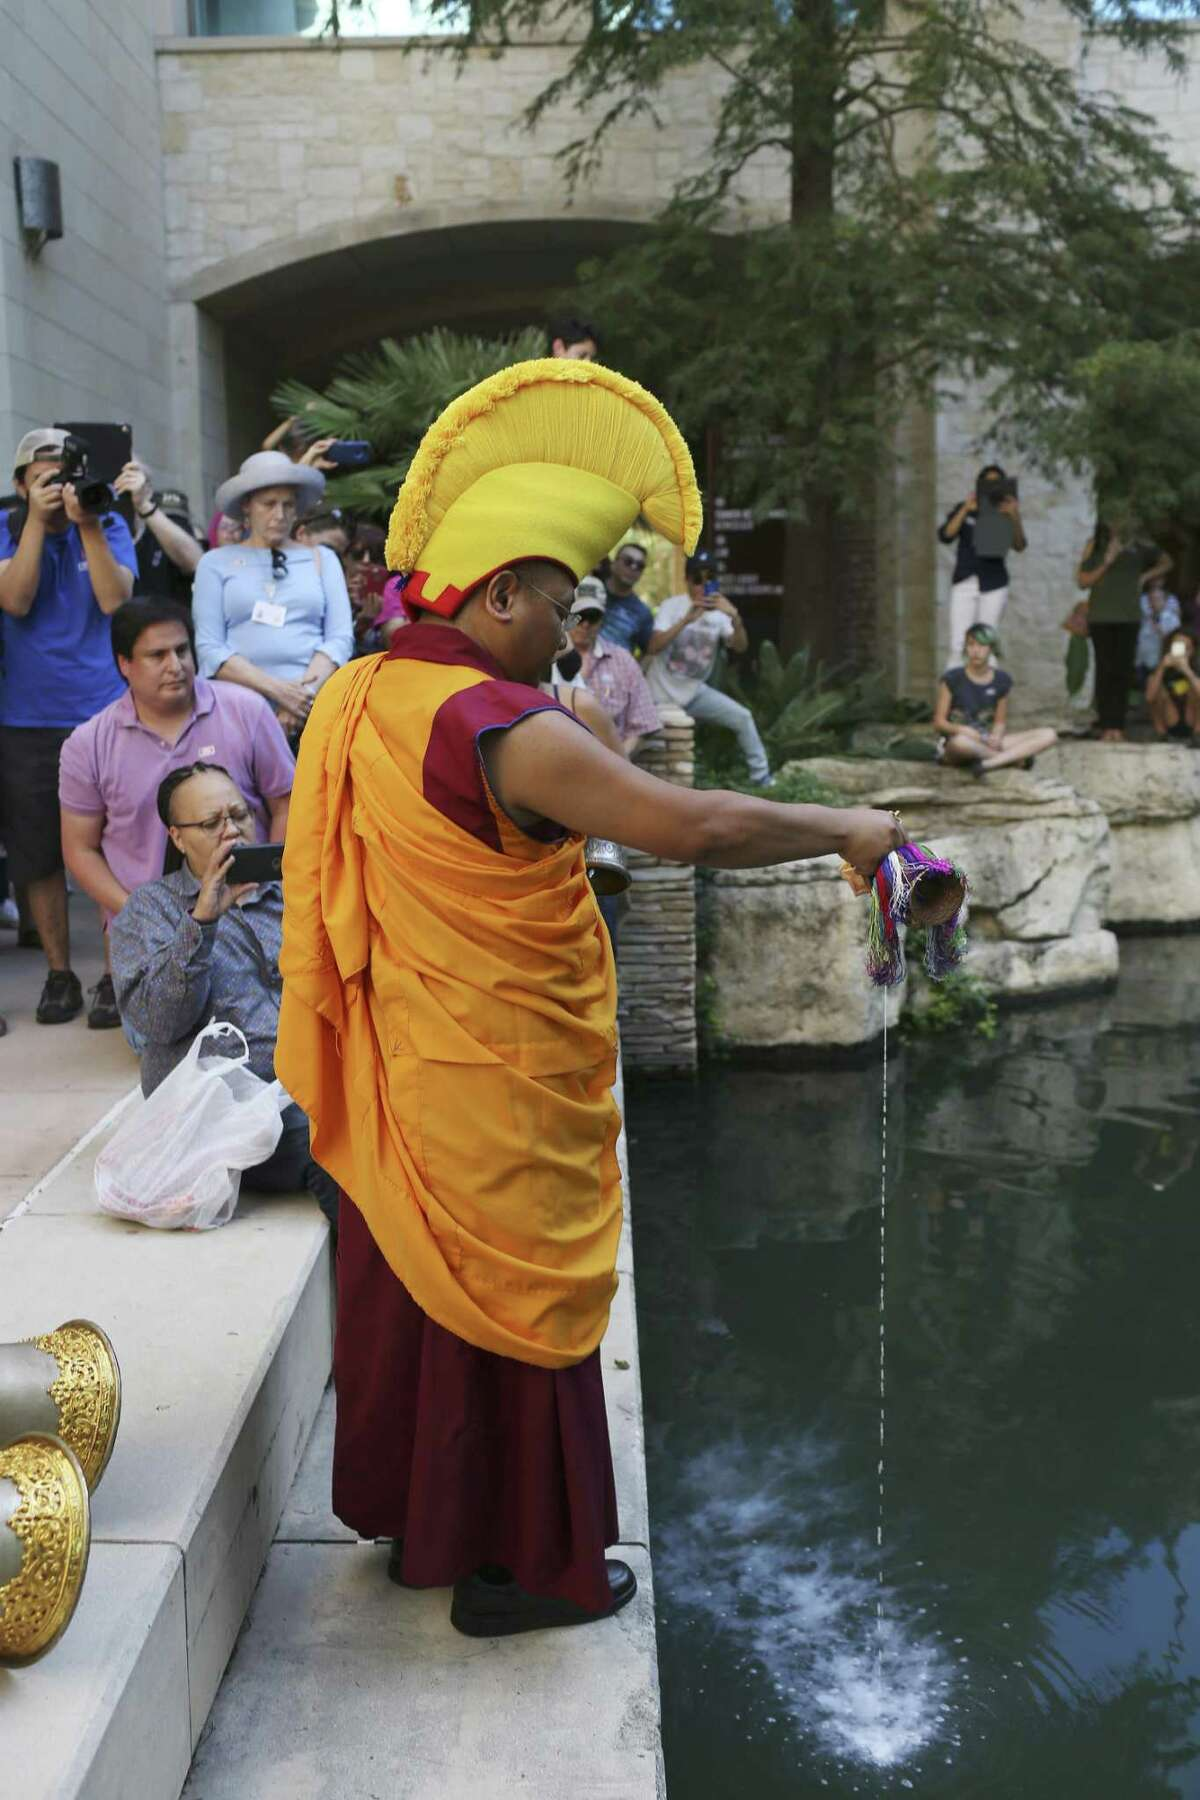 A Buddhist monk from the Drepung Loseling Monastery disperses sand from a mandala into the San Antonio River during a Closing Ceremony, Sunday, Oct. 1, 2017. The monks started creating the mandala sand painting at the Institute of Texan Cultures on Thursday and ended with the dispersing of the sand Sunday afternoon.